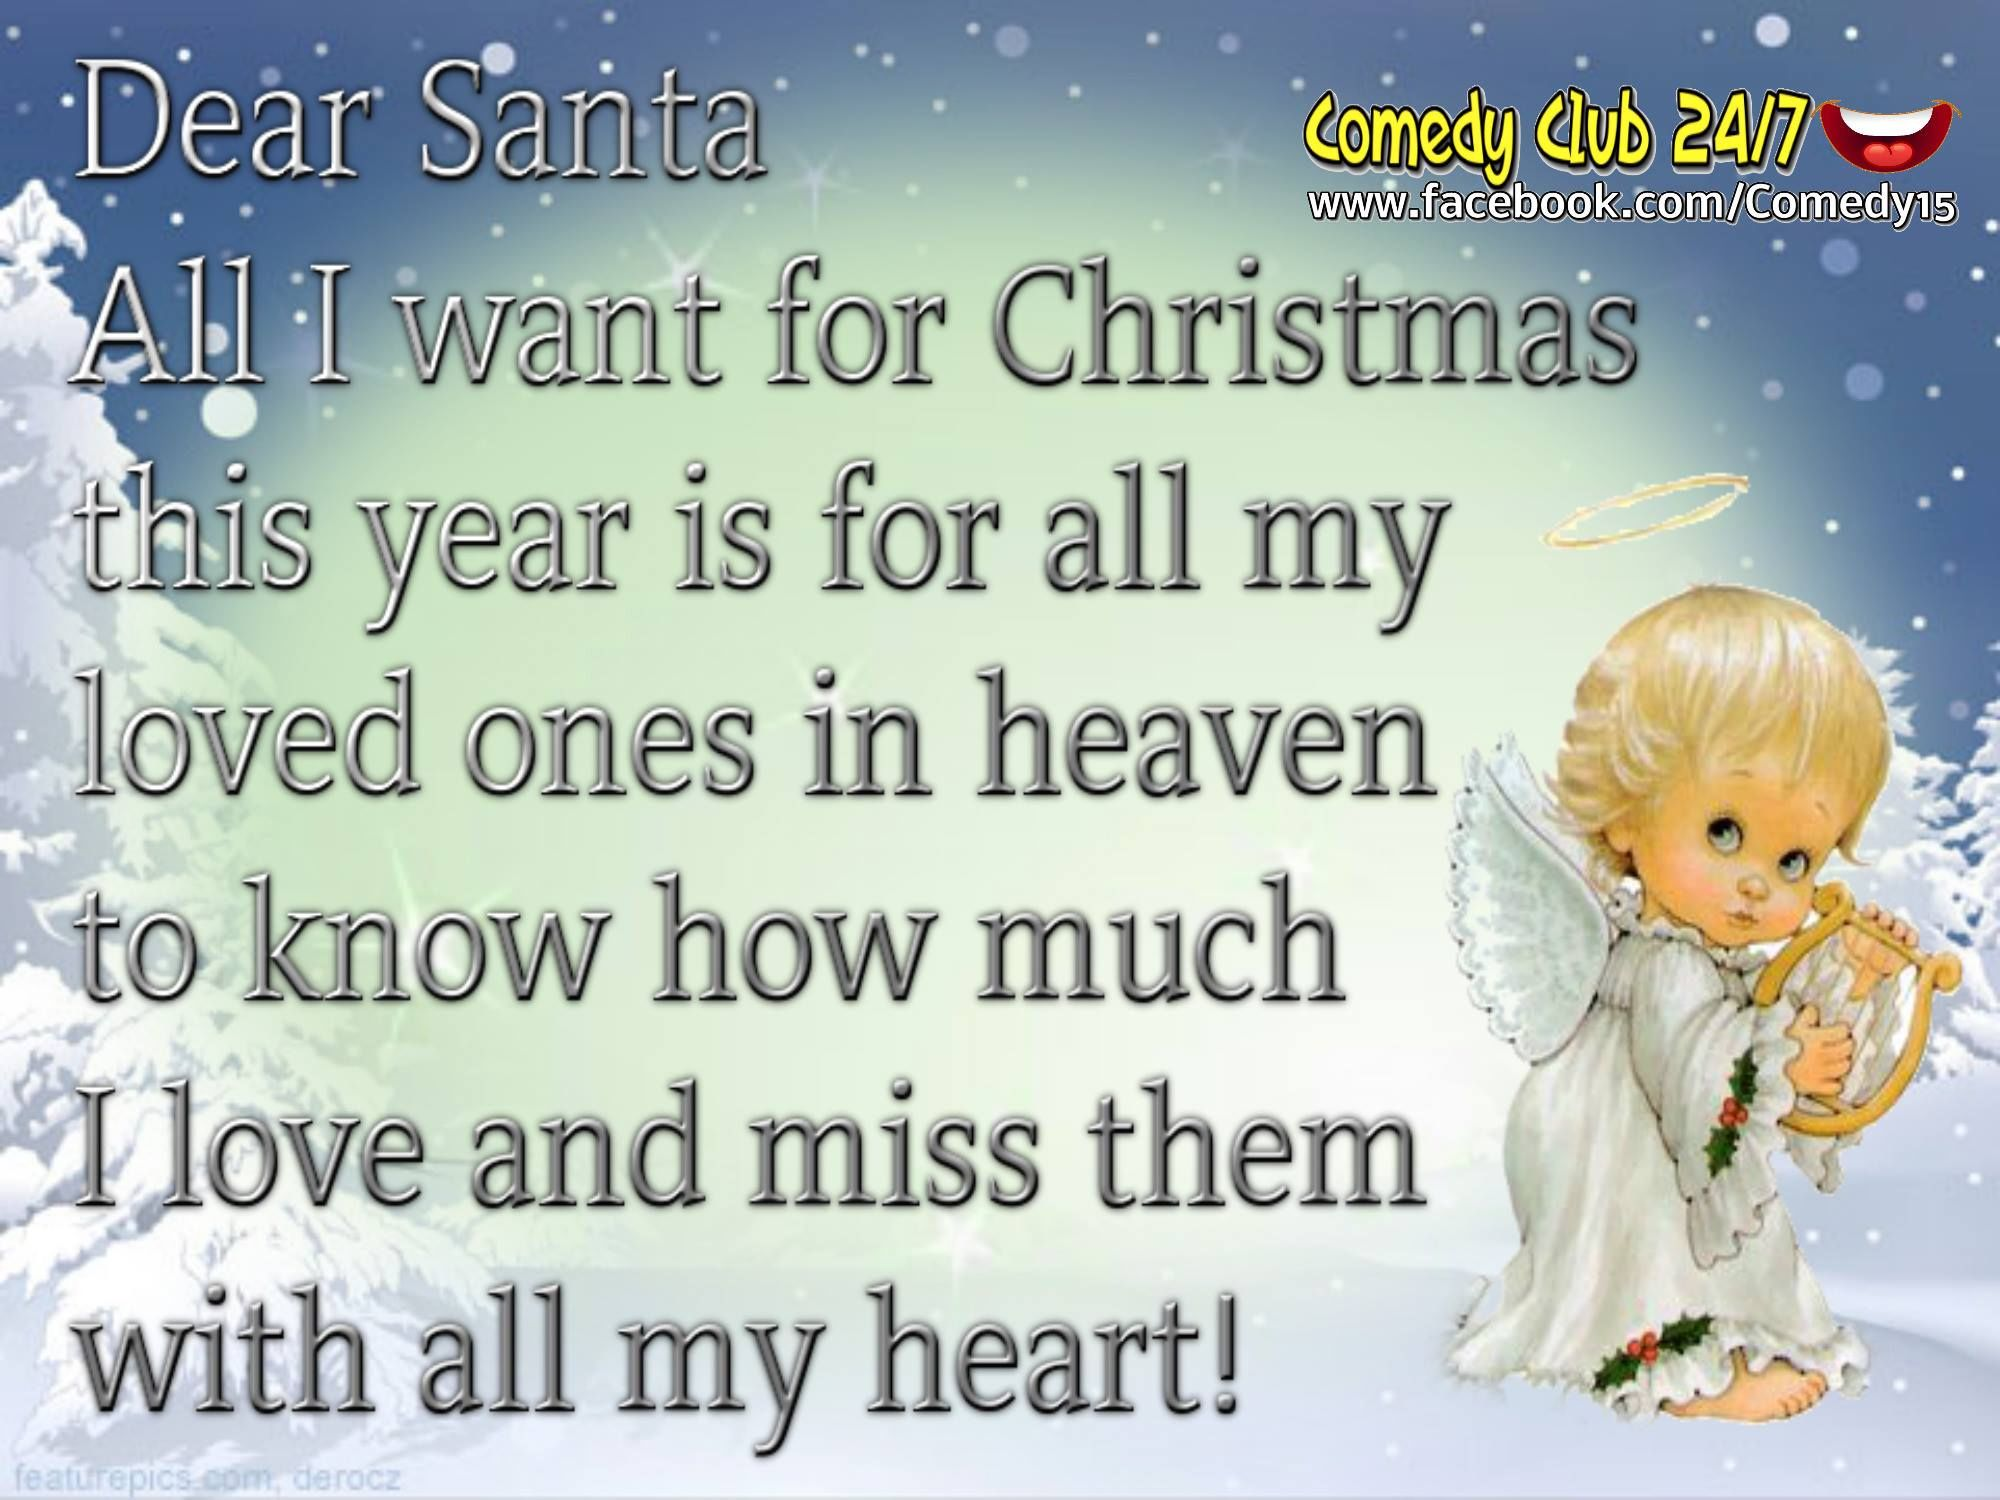 Quotes About Lost Loved Ones In Heaven Dear Santa I Want All My Loved Ones In Heaven To Know I Love Them